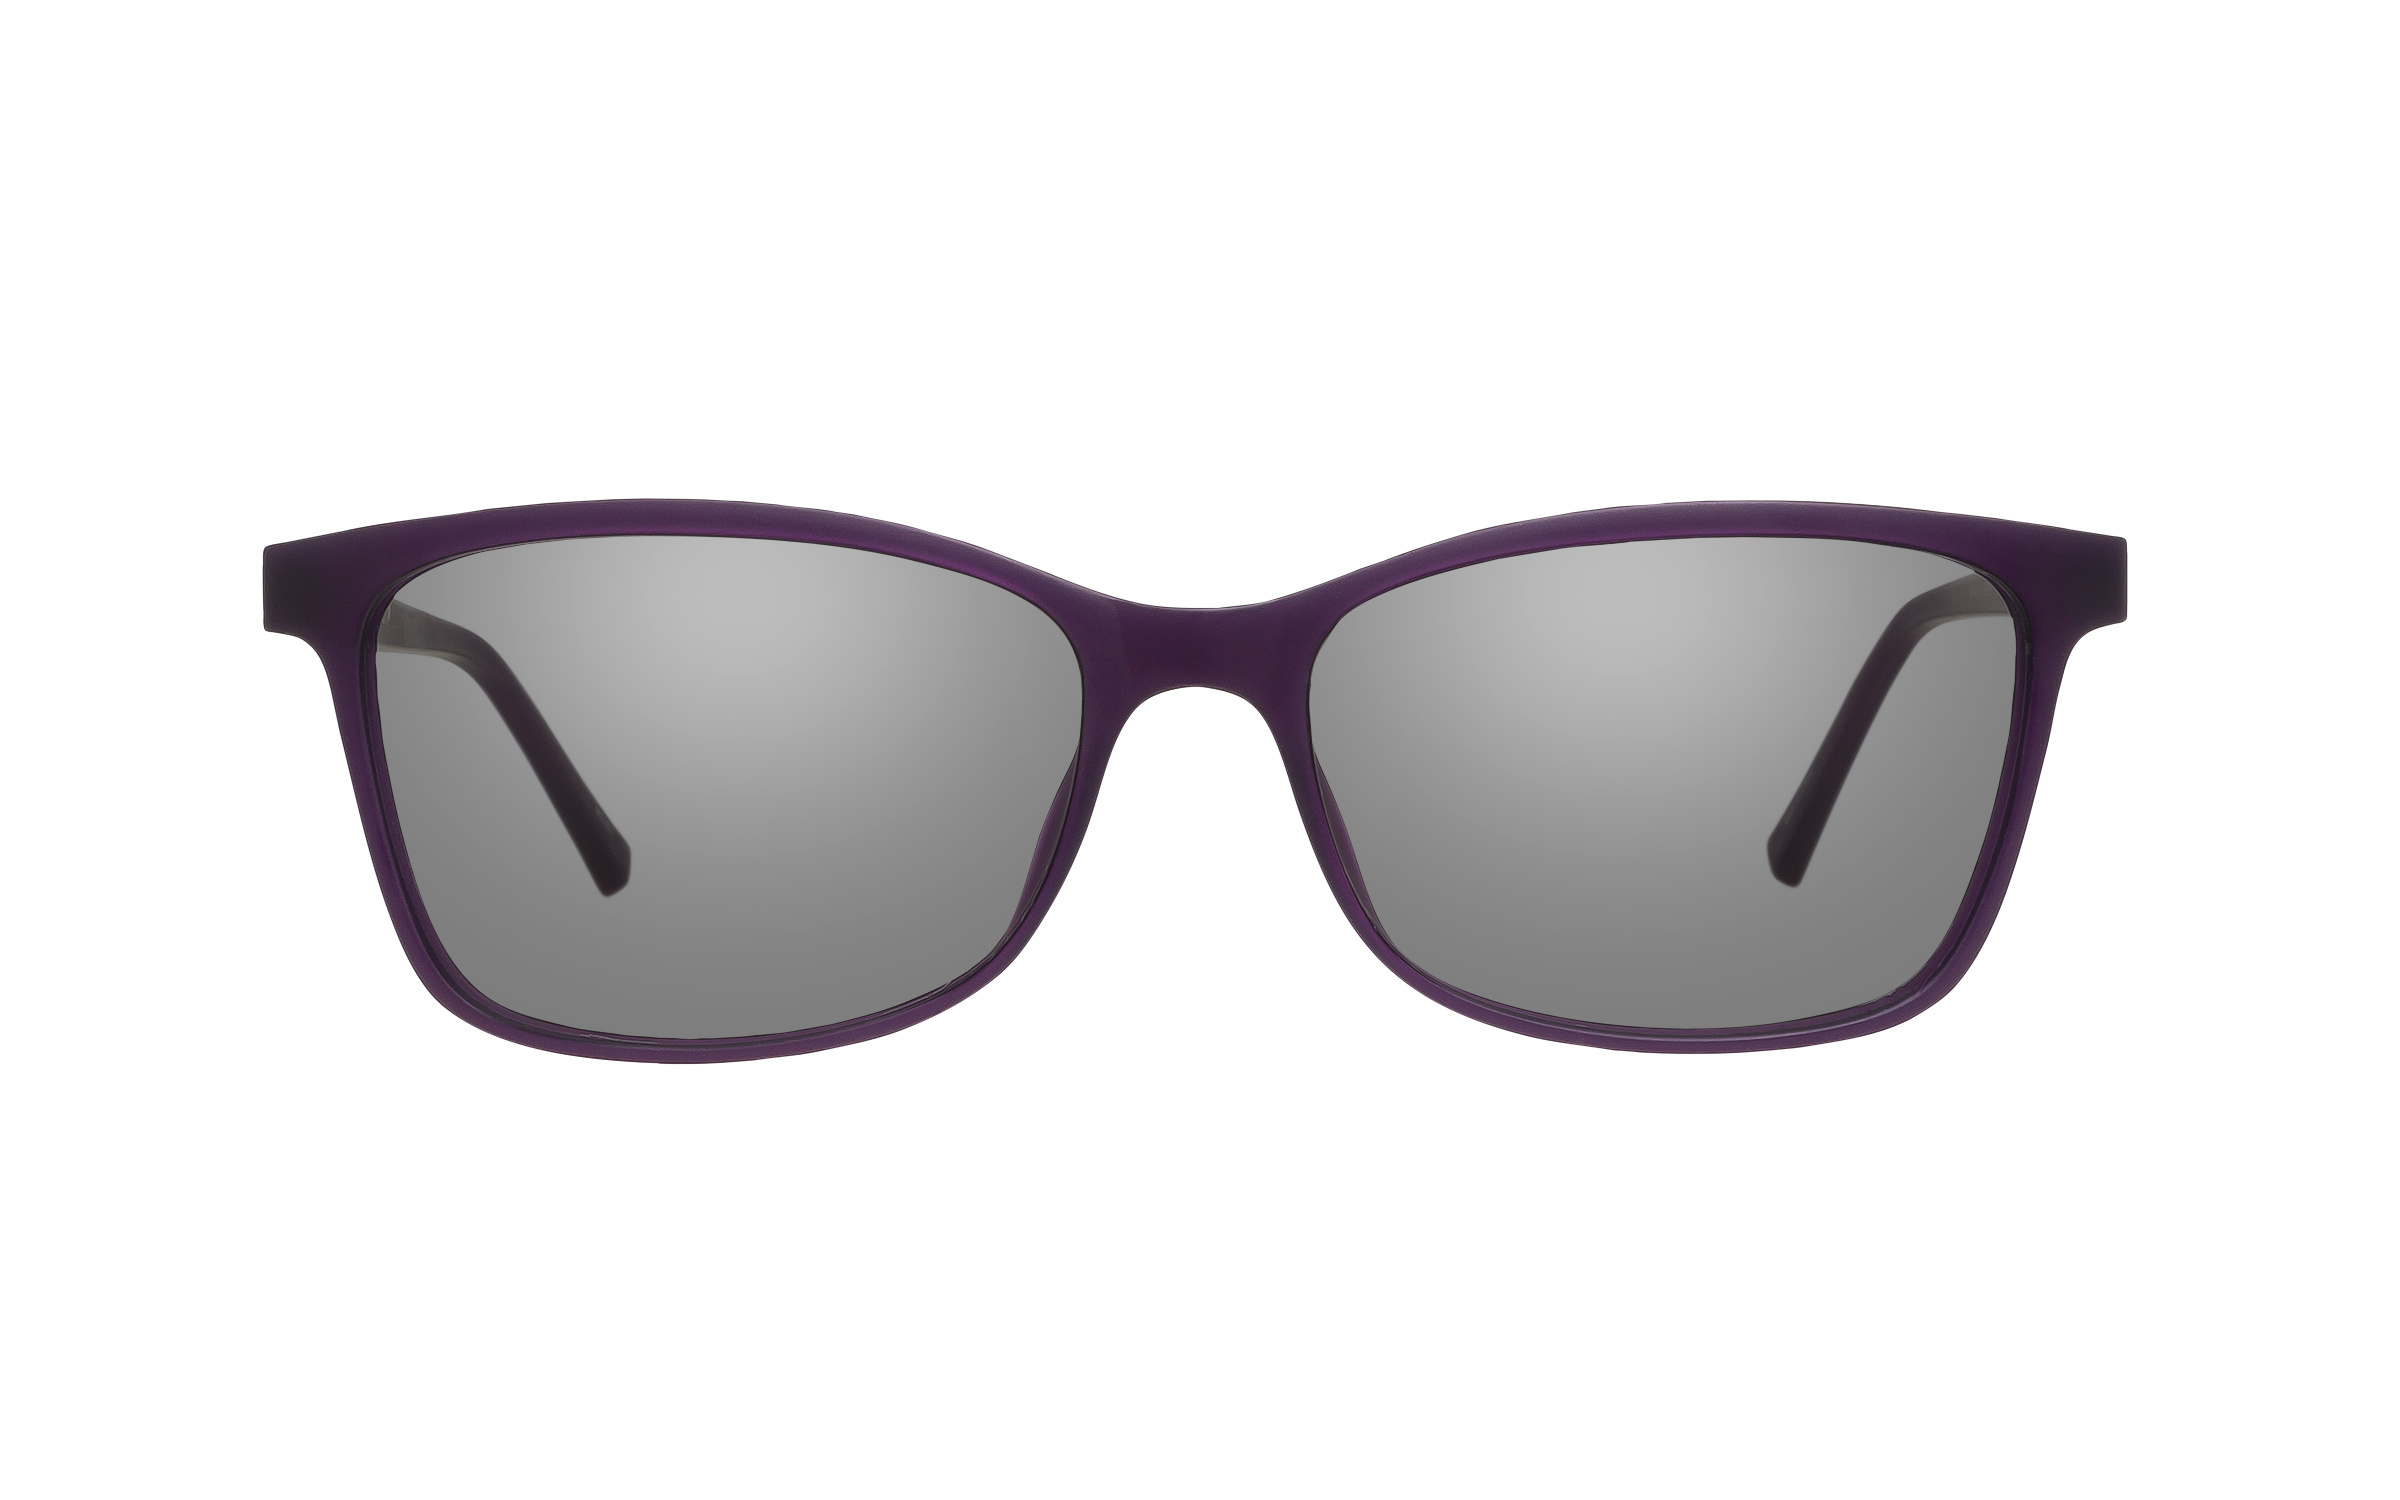 shop confidently for evergreen 6044 53 glasses with